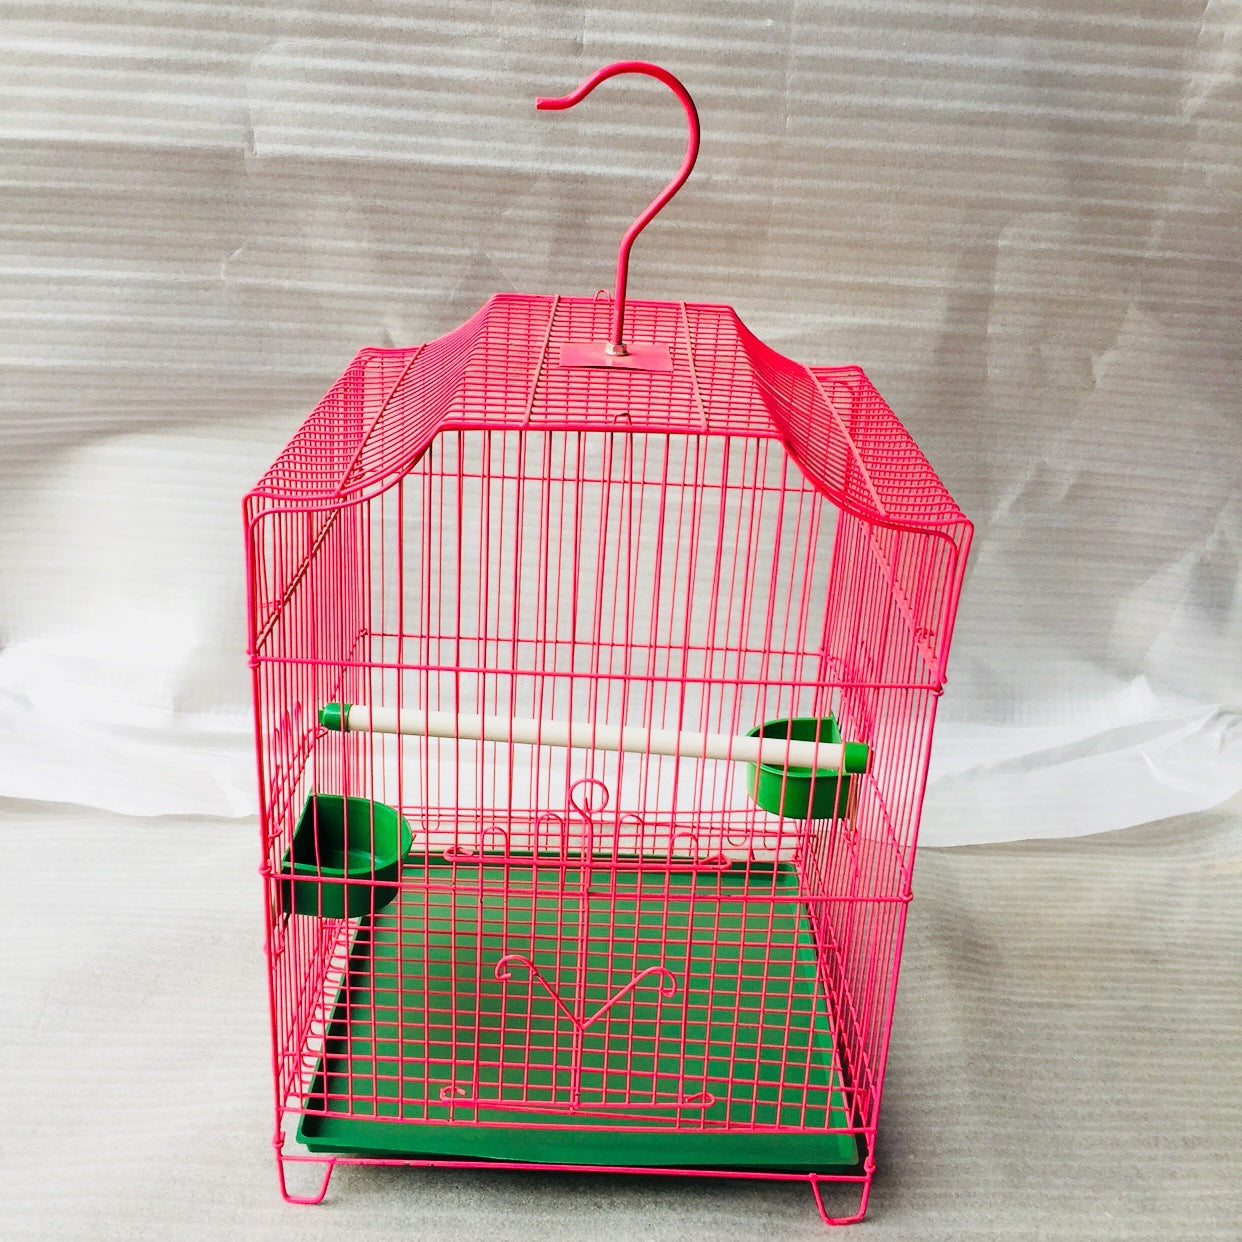 Starling cage small bird cage wire spray anti-rust bird cage